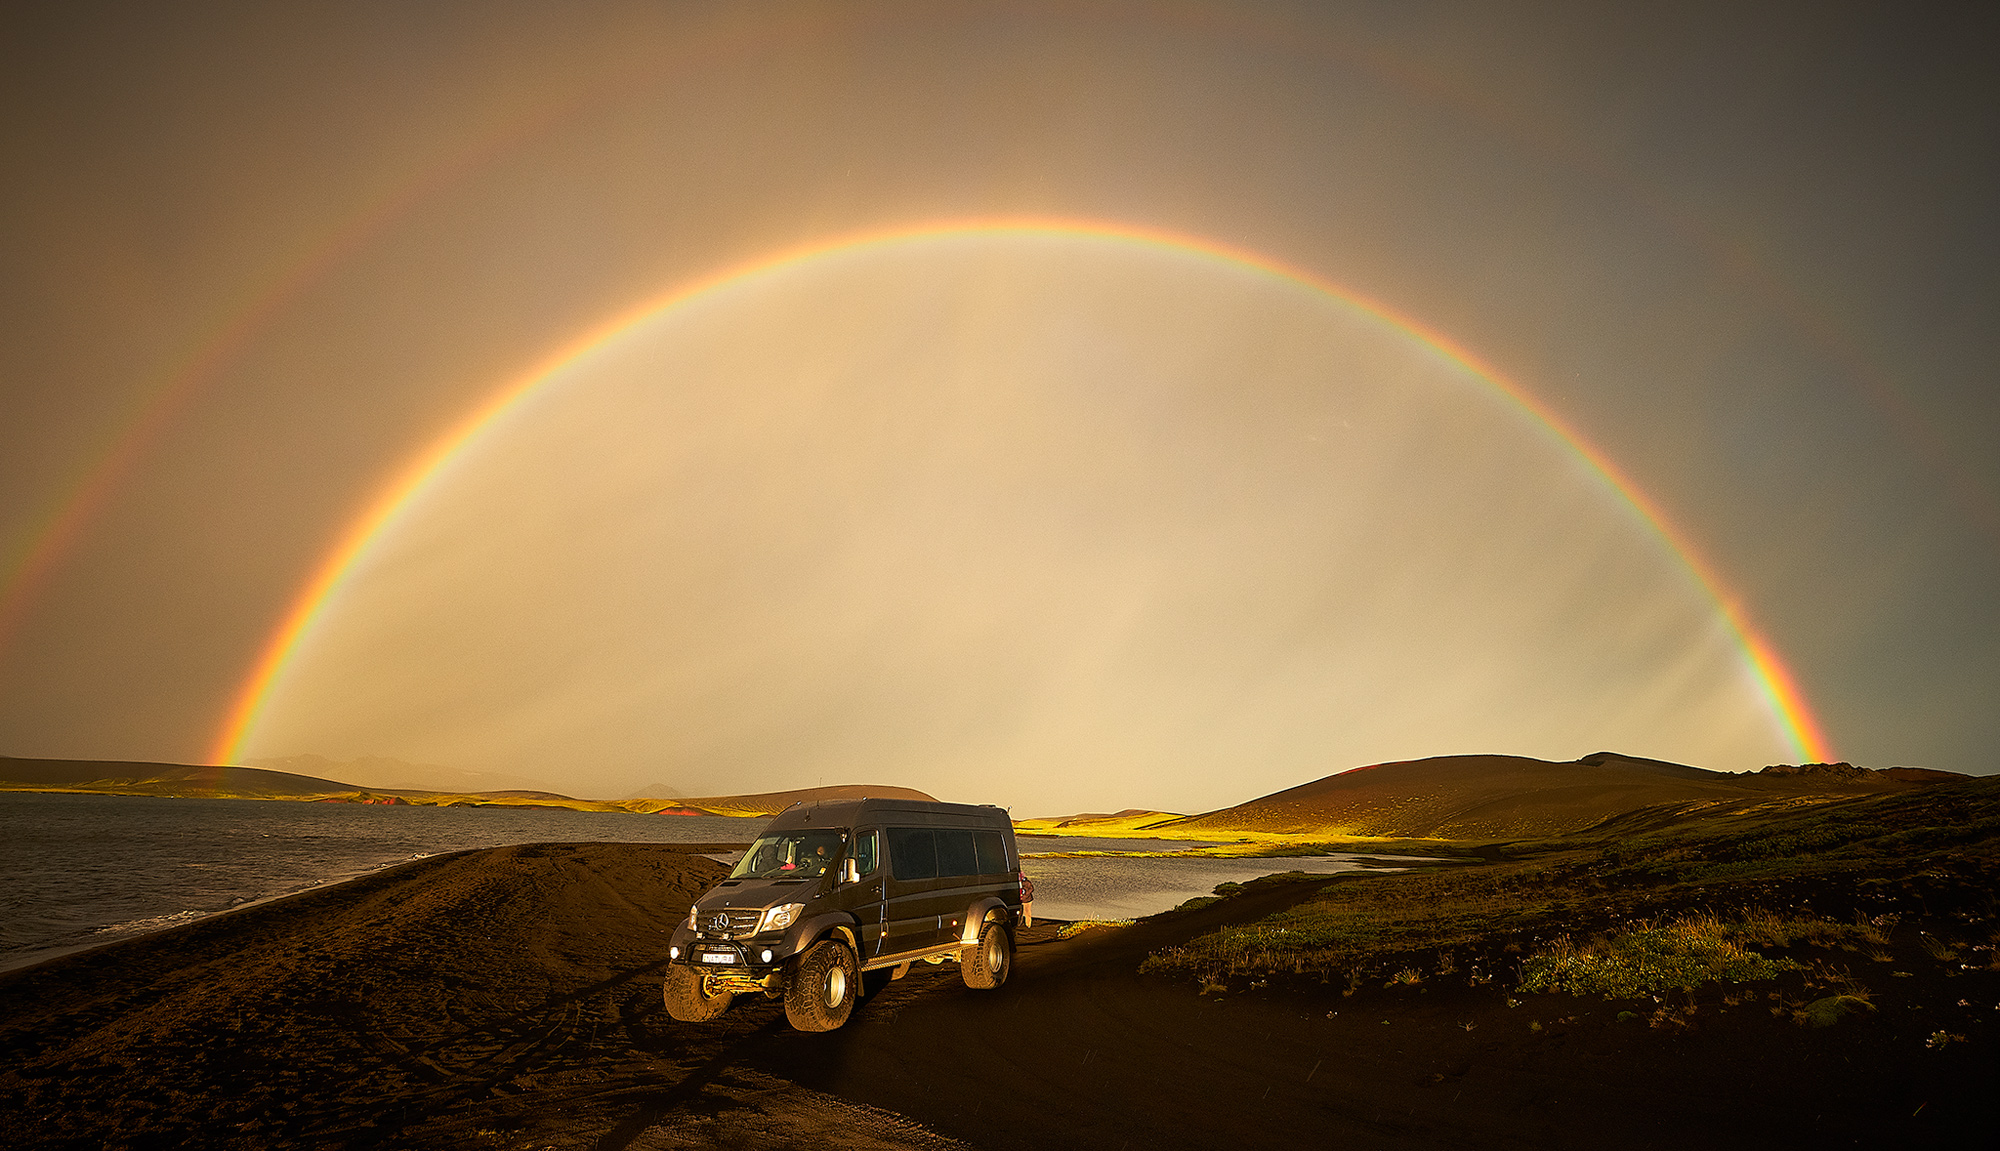 There is always a photo opp in Iceland